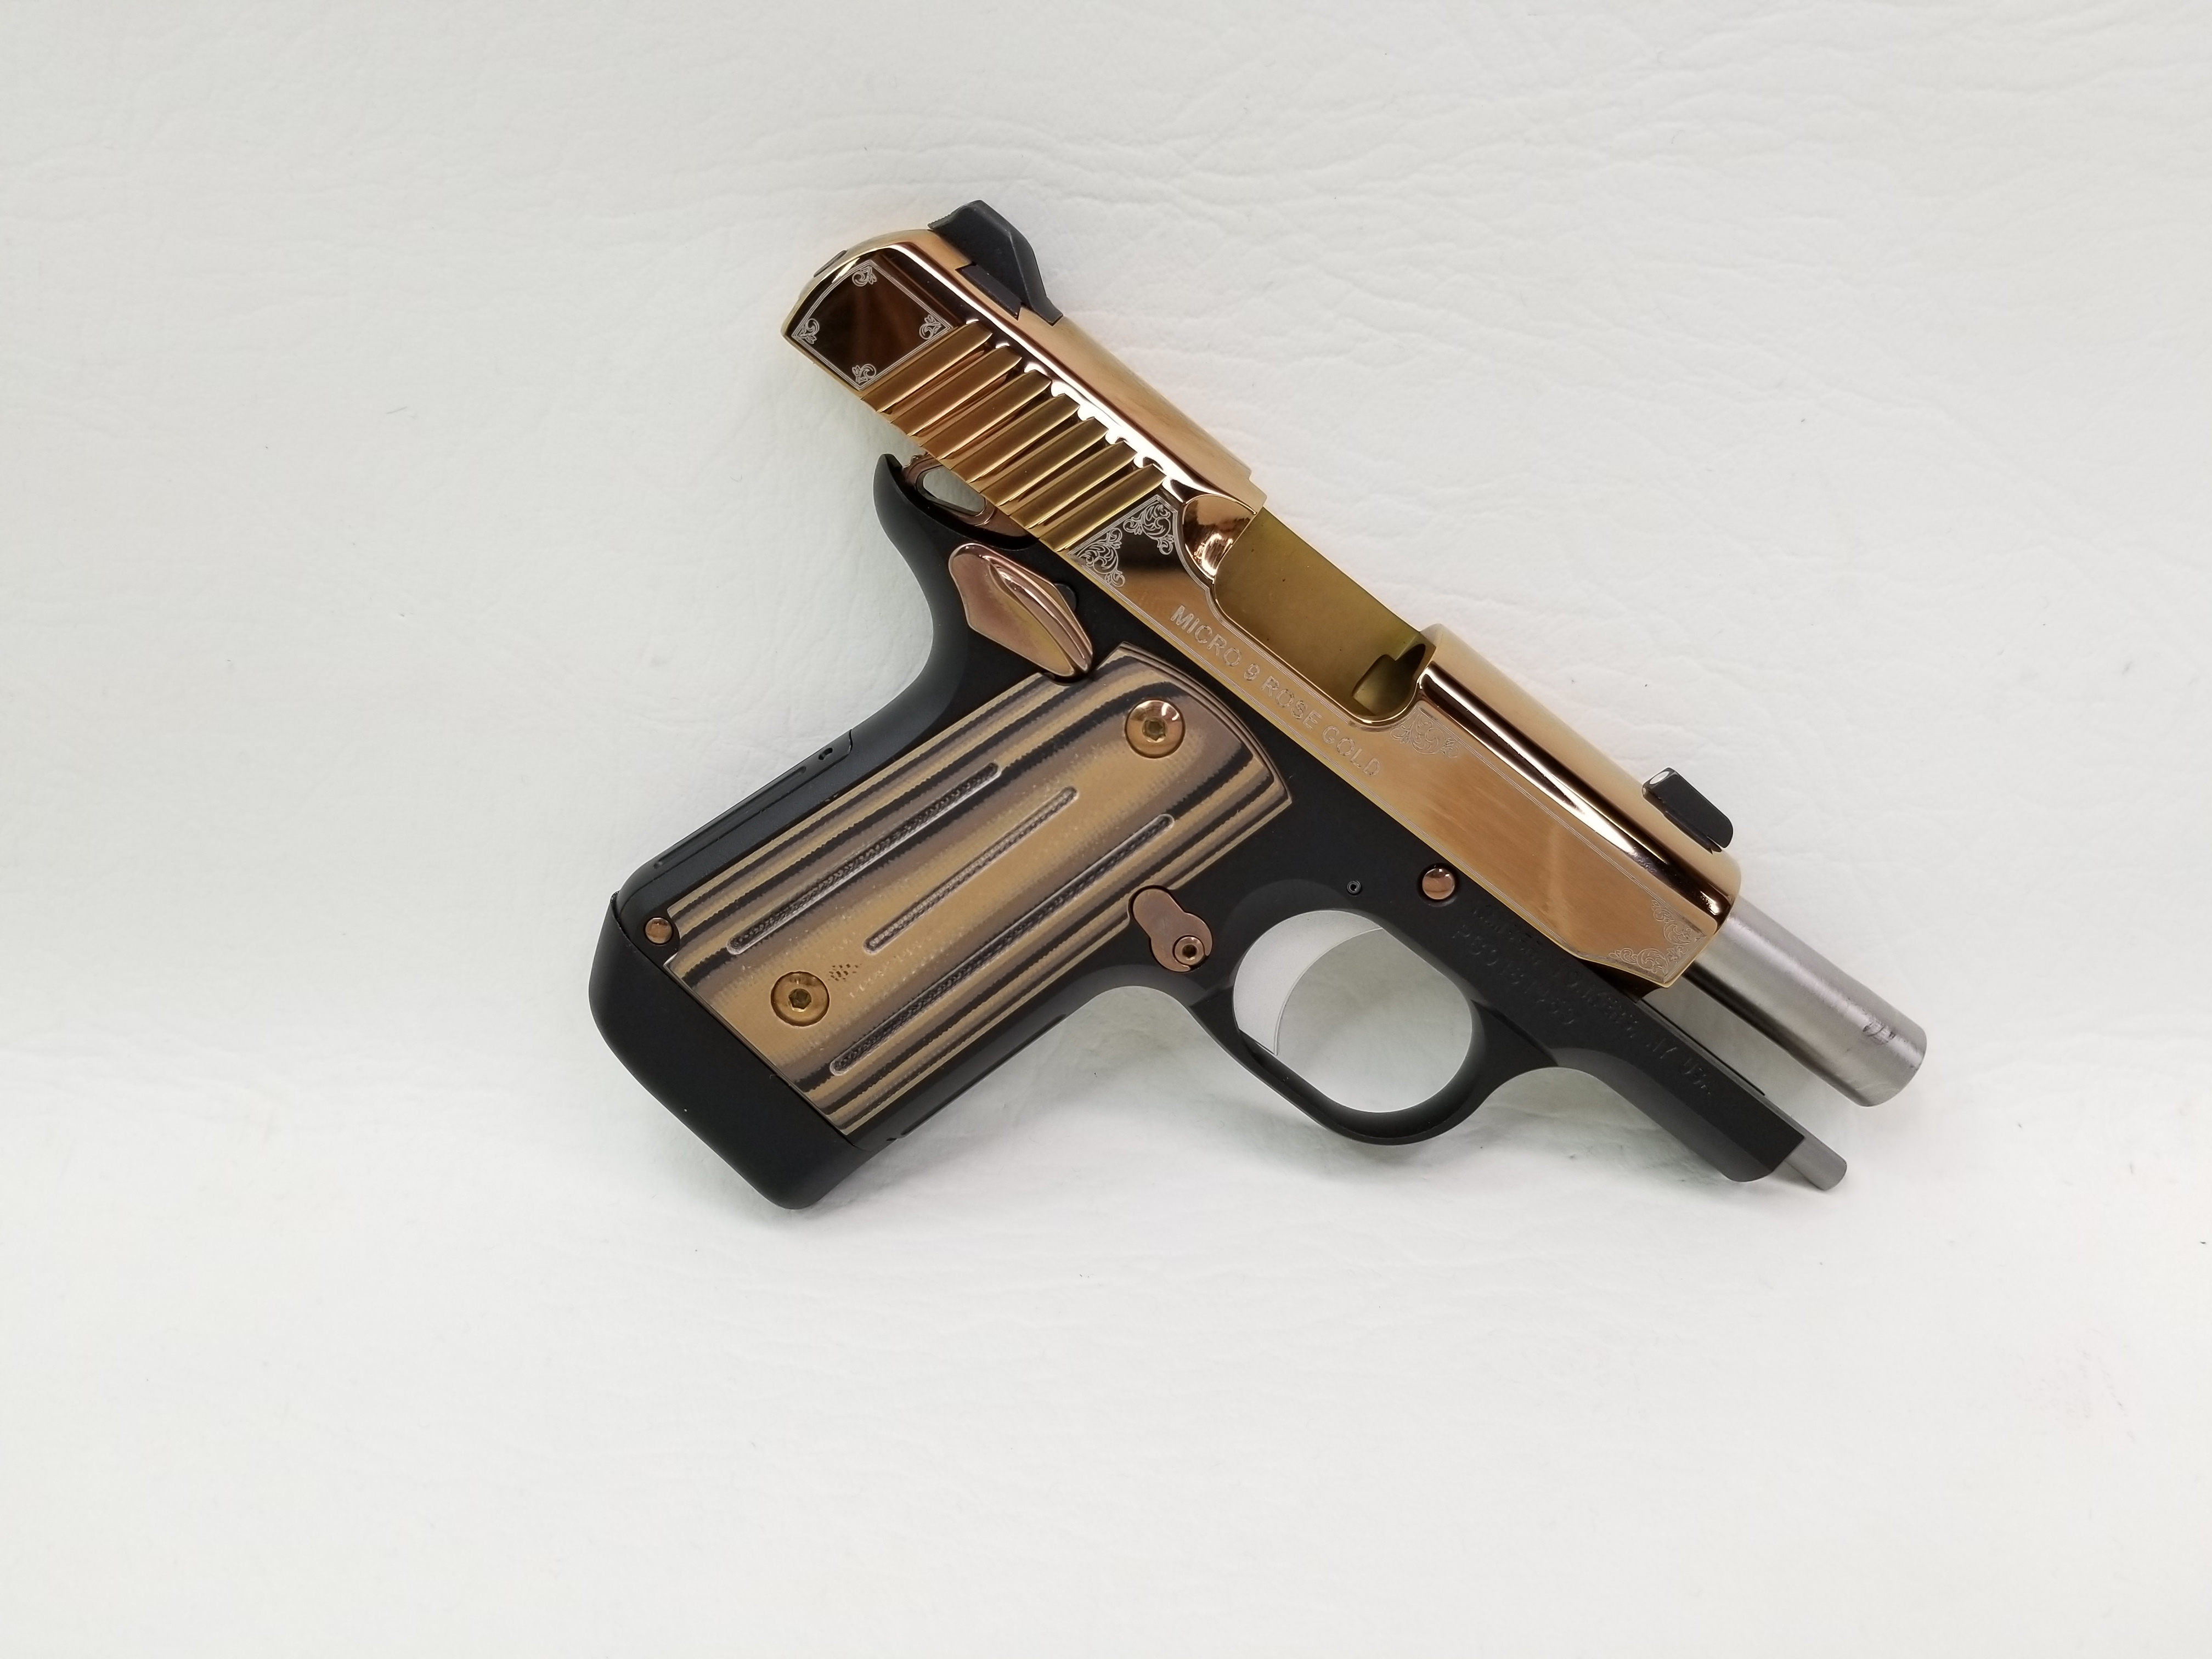 Kimber Micro 9 Rose Gold 9mm - Semi Auto Pistols at